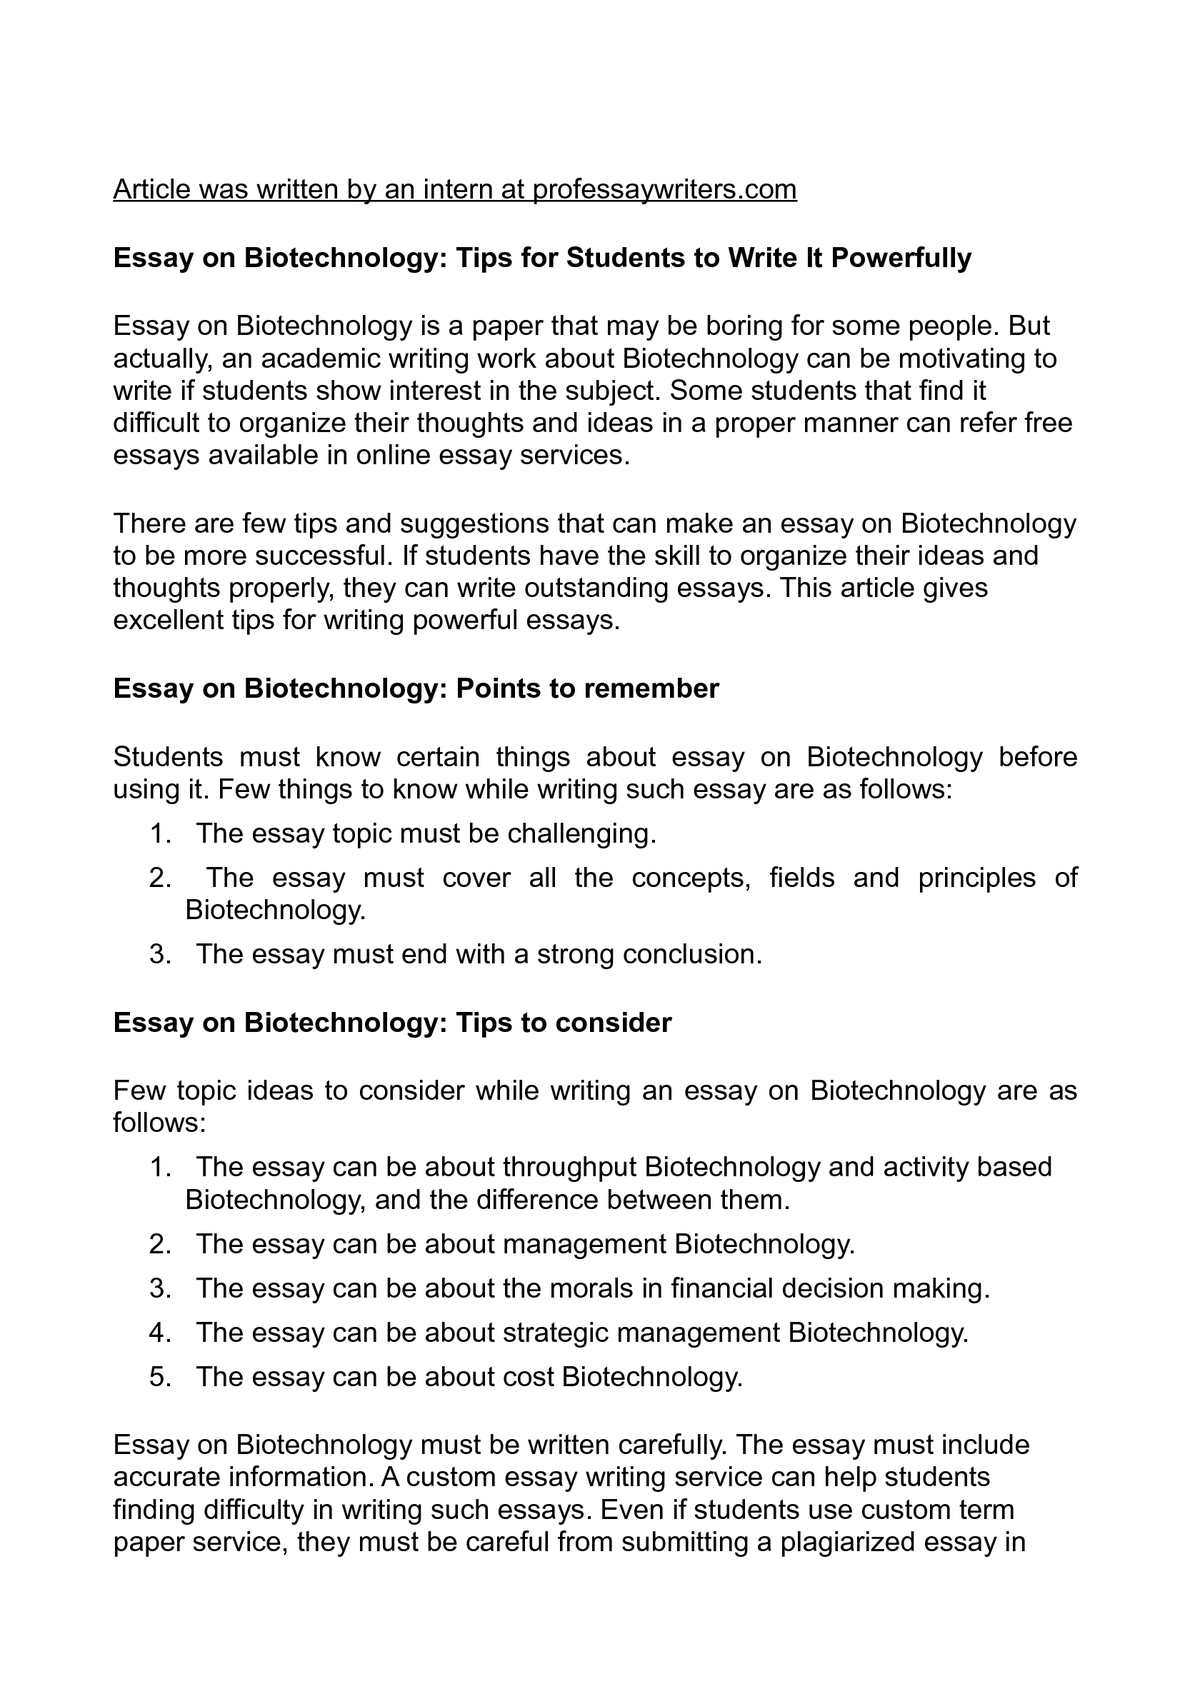 essay on biotechnology tips for students to write it  essay on biotechnology tips for students to write it powerfully